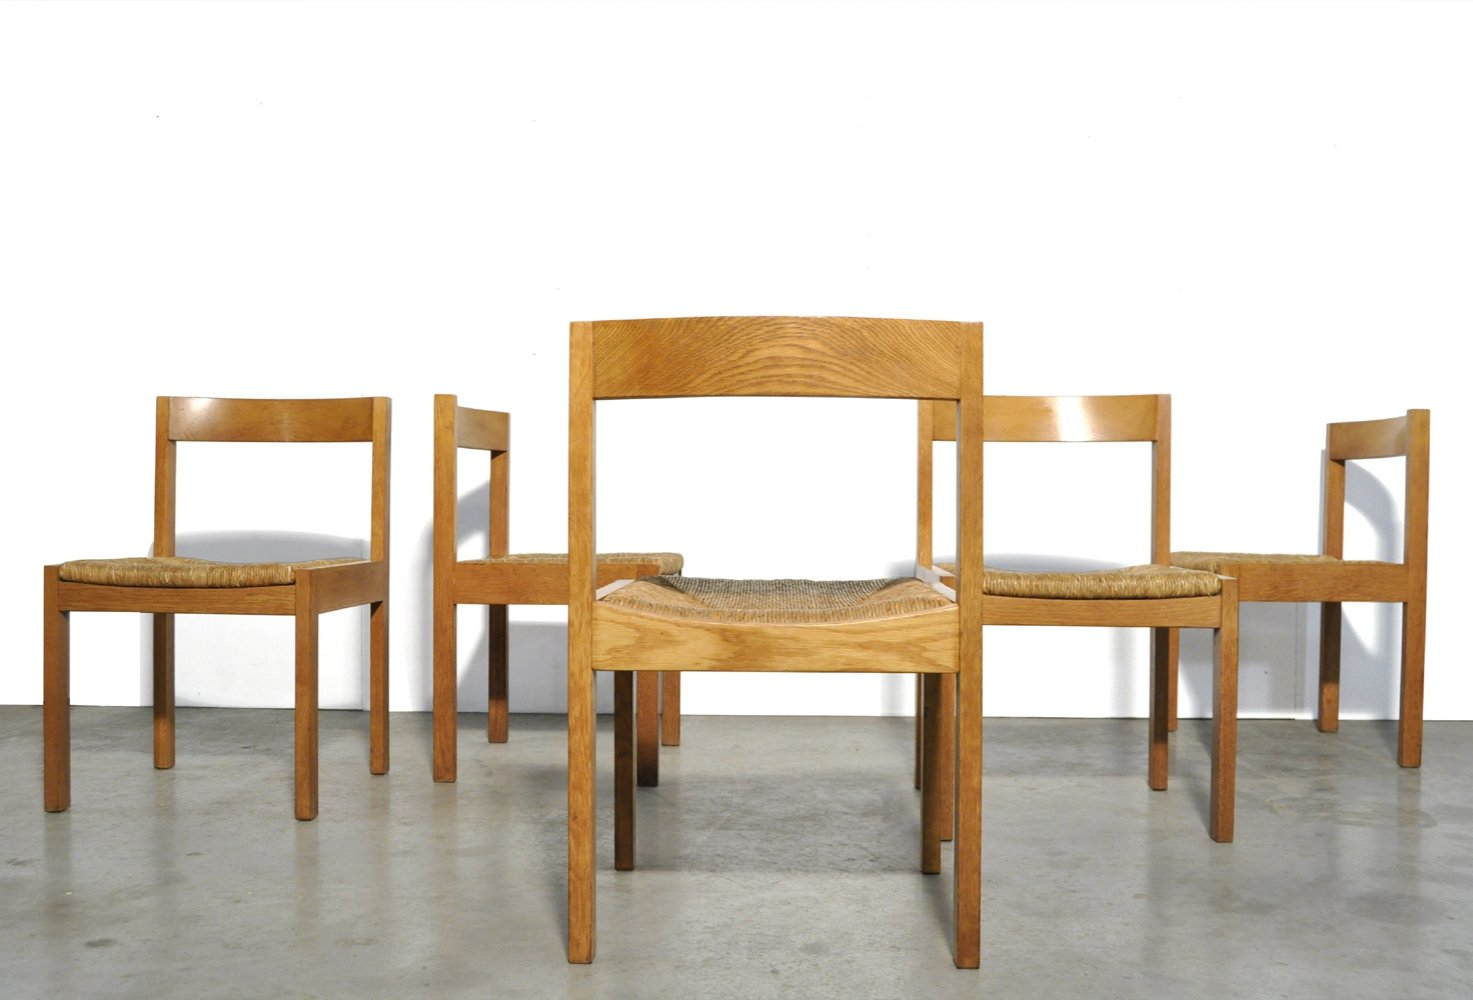 Set of 5 solid oak dining chairs with reed seat & wooden back, 1970s